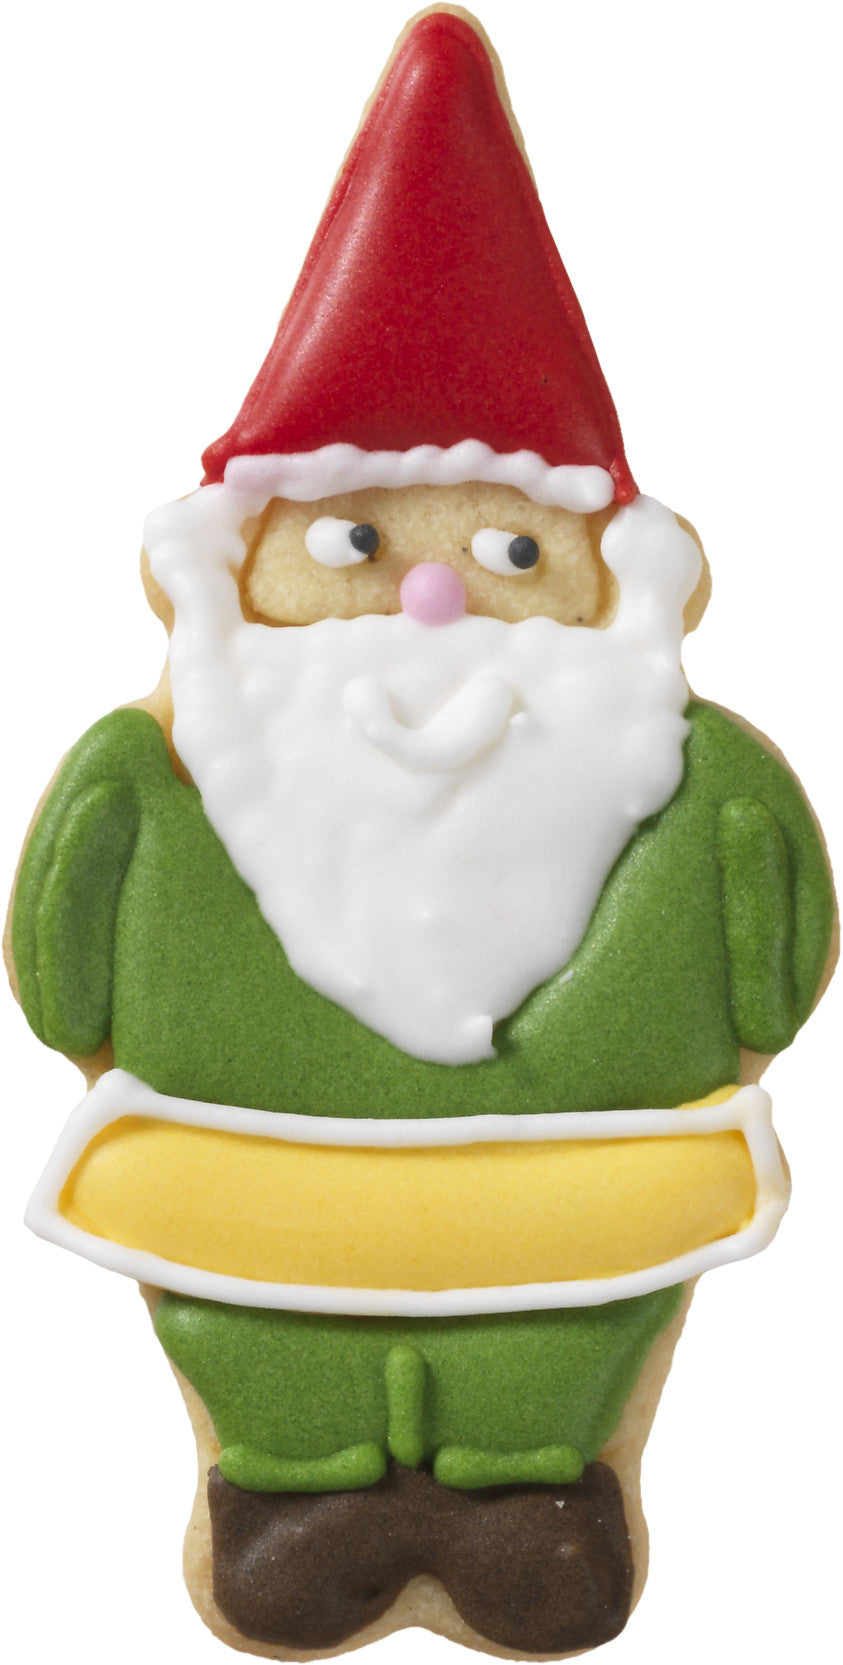 Gnome 9cm With Internal Detail Cookie Cutter | Cookie Cutter Shop Australia